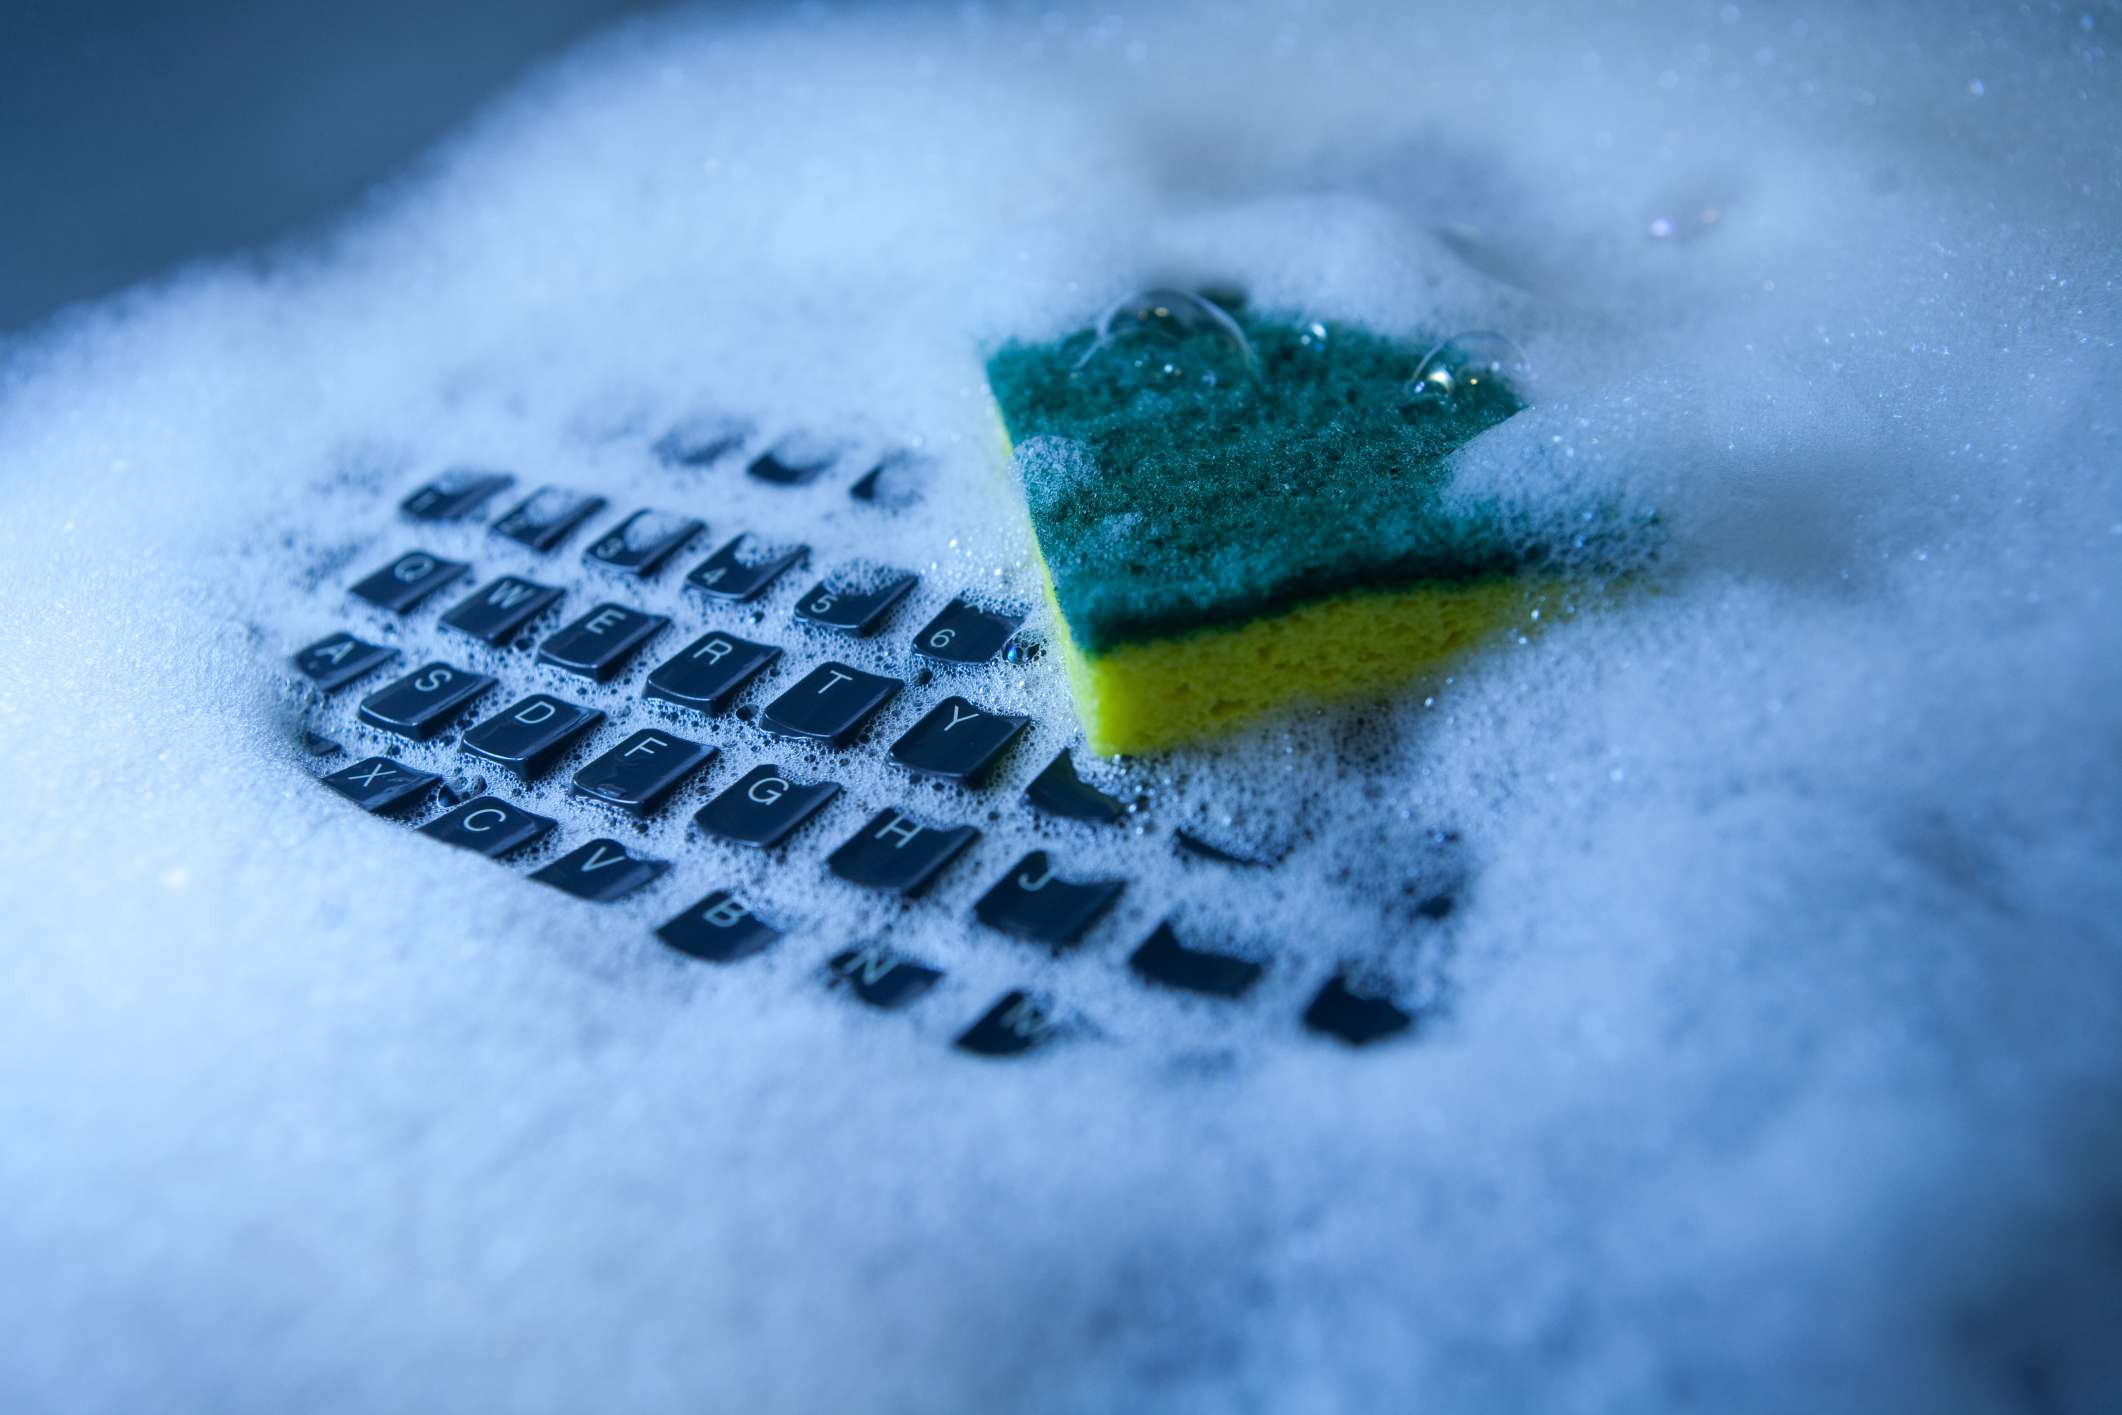 Photo of a computer keyboard under soapy water